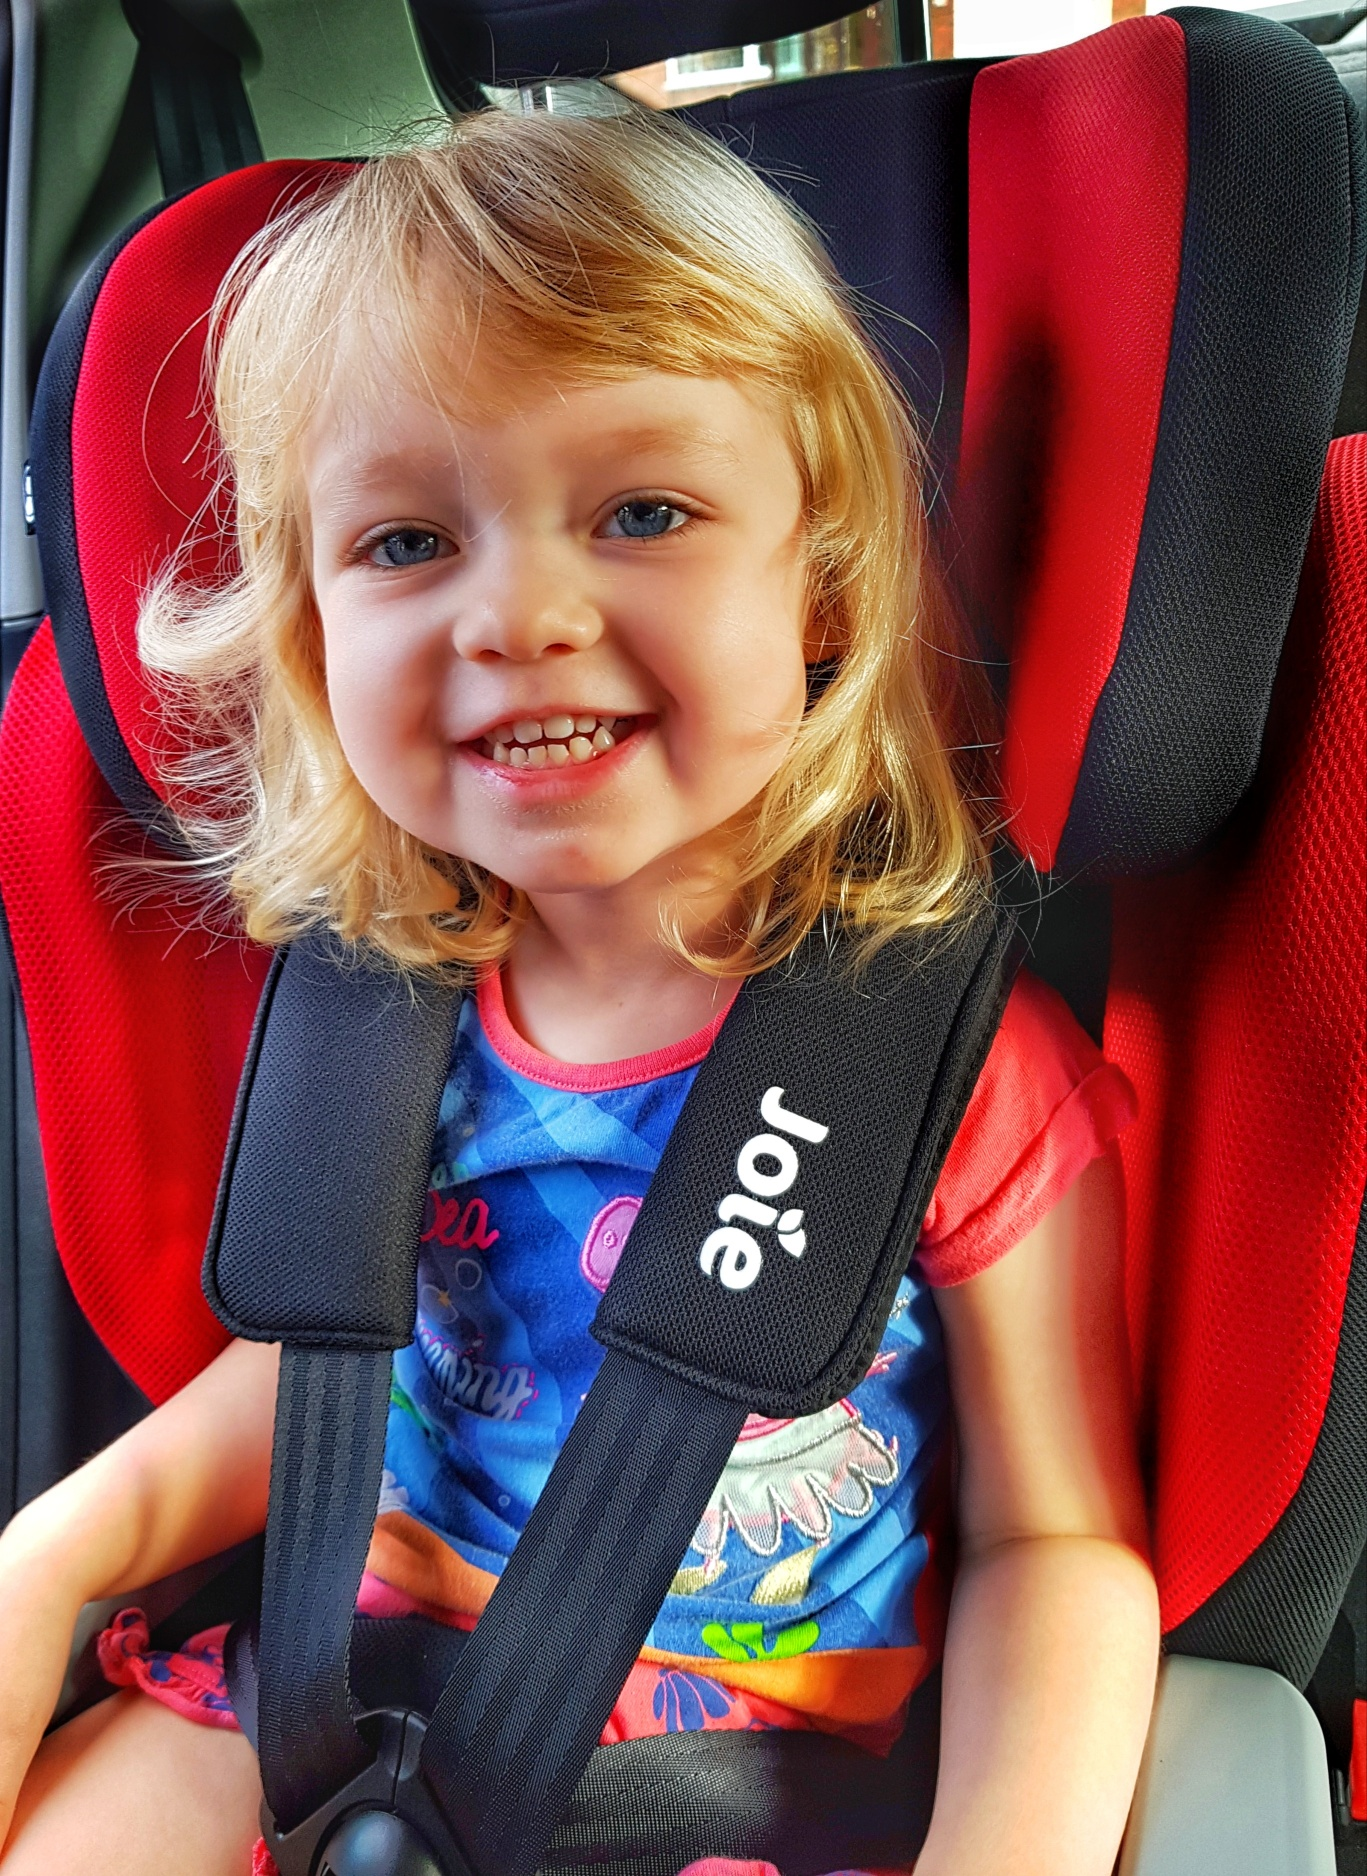 How To Adjust Straps On Joie Car Seat